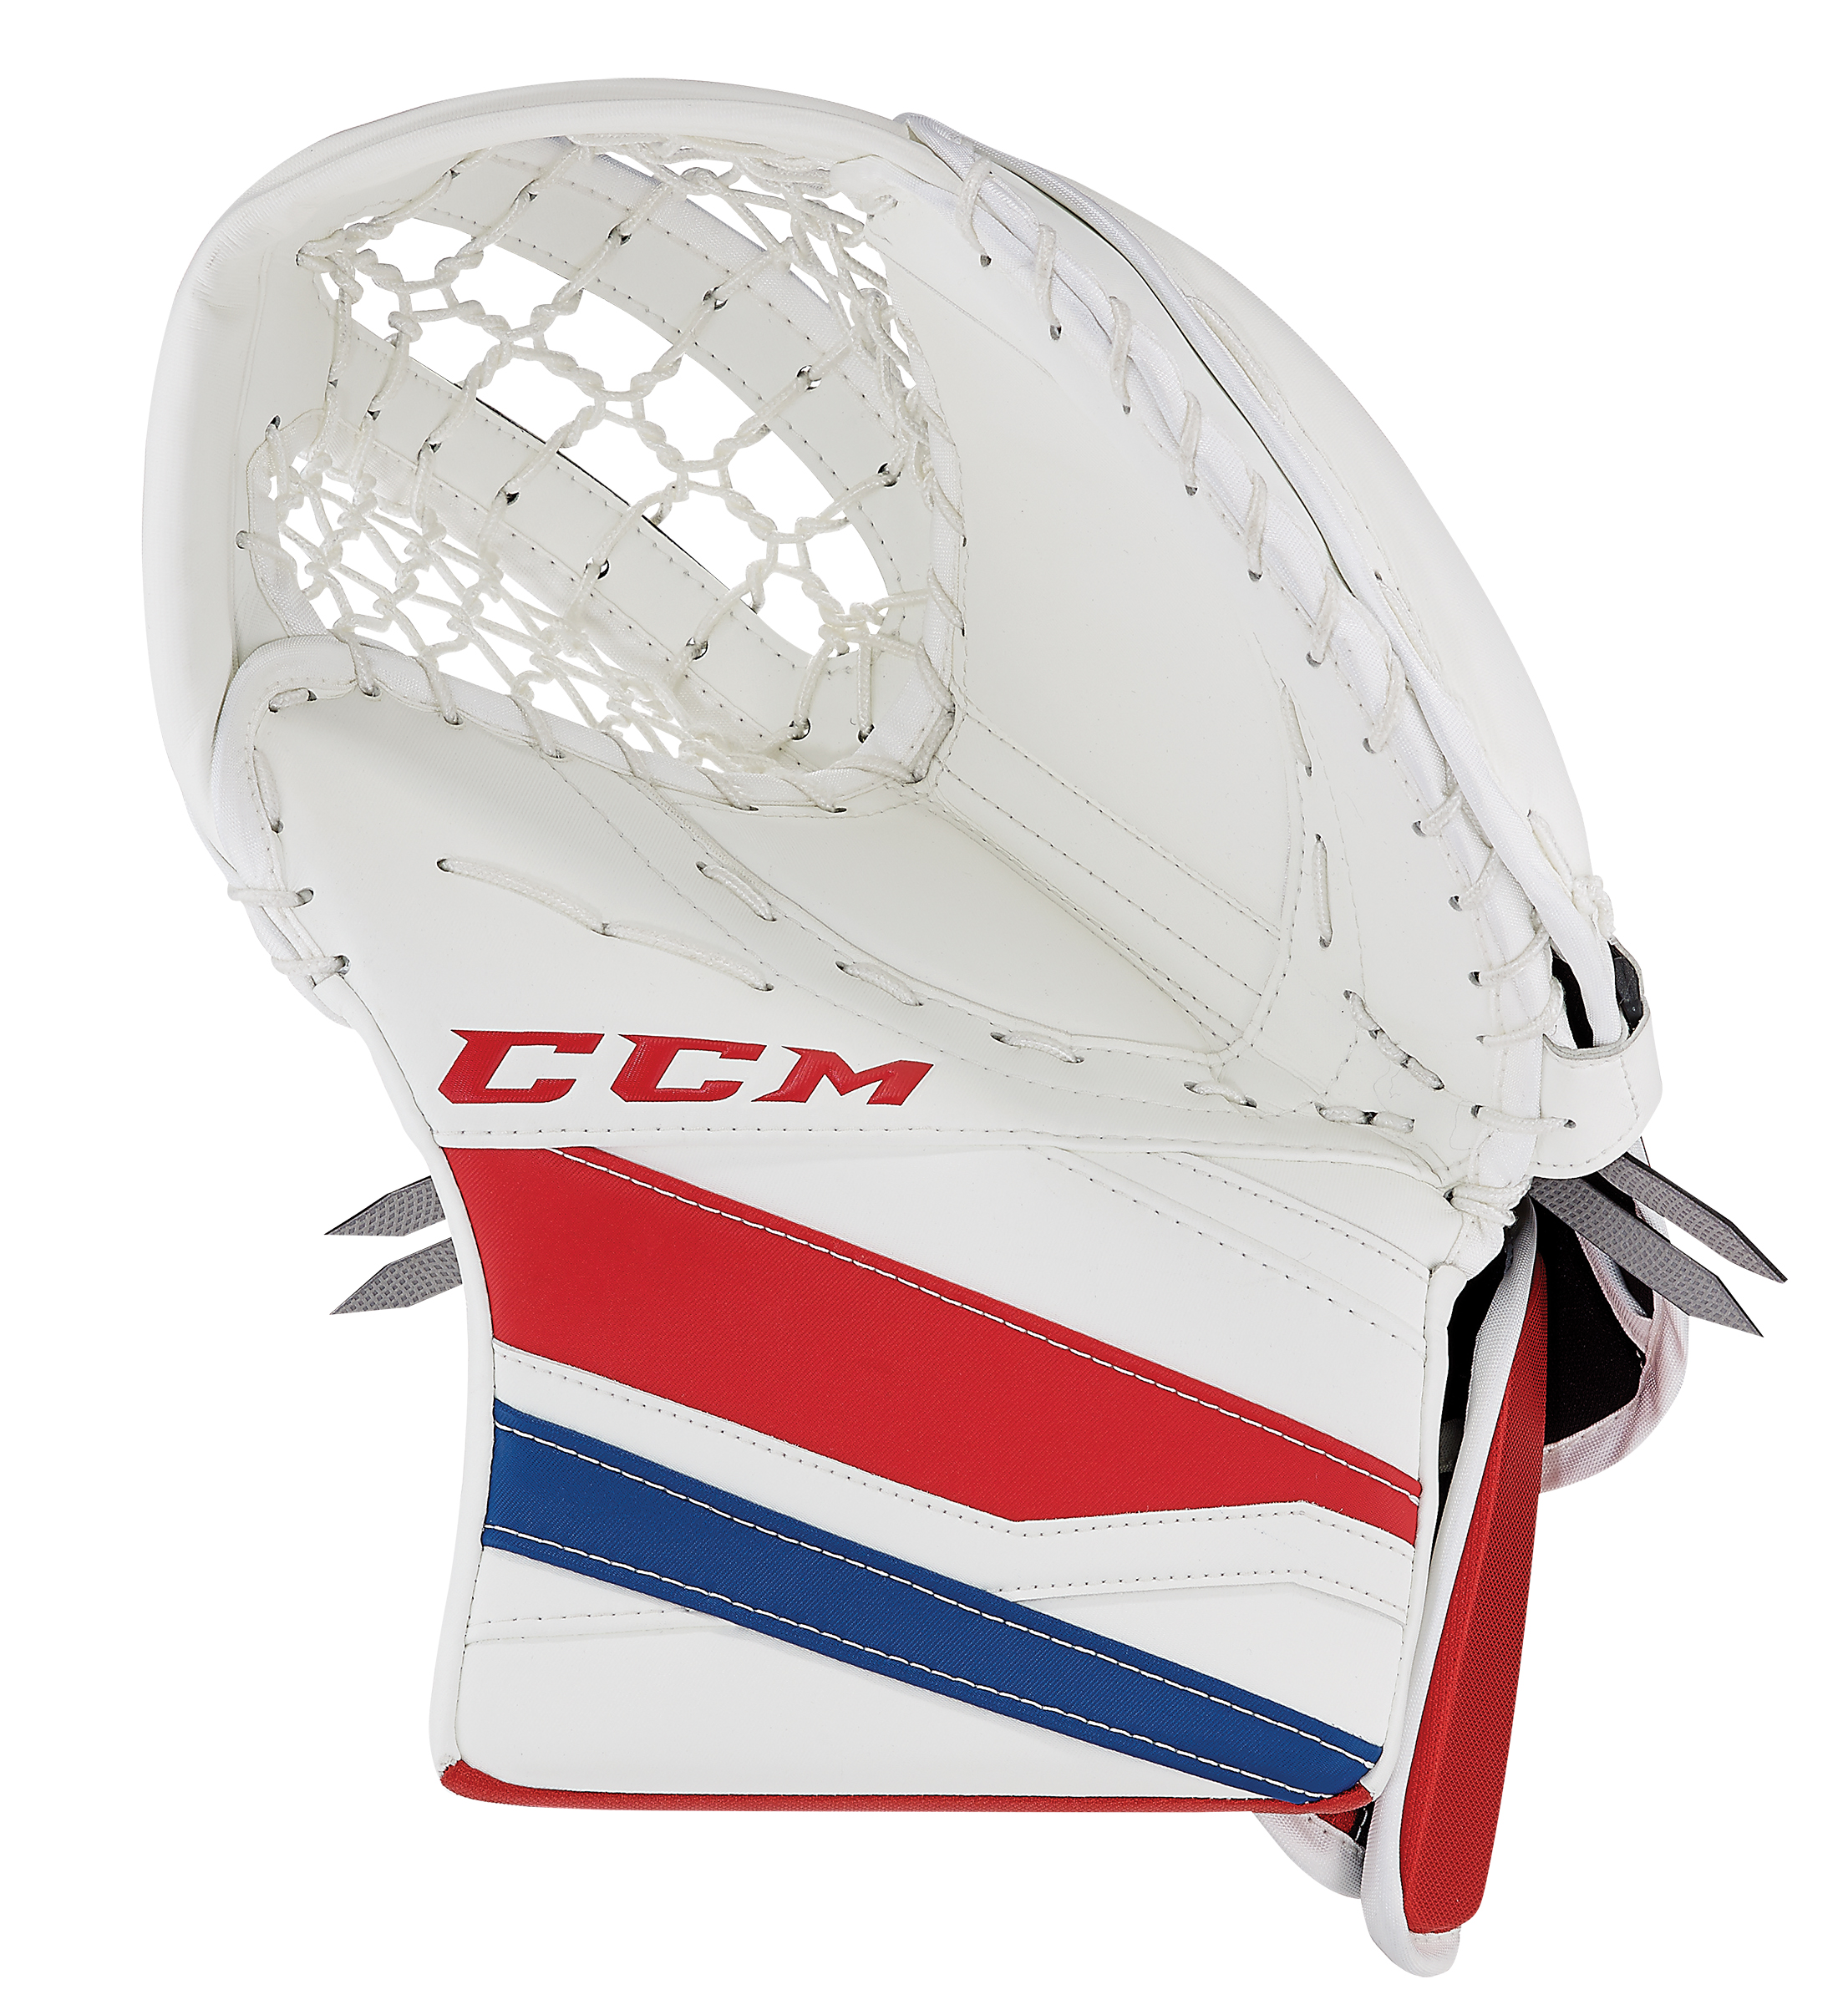 CCM E-Flex 3 Goalie Equipment